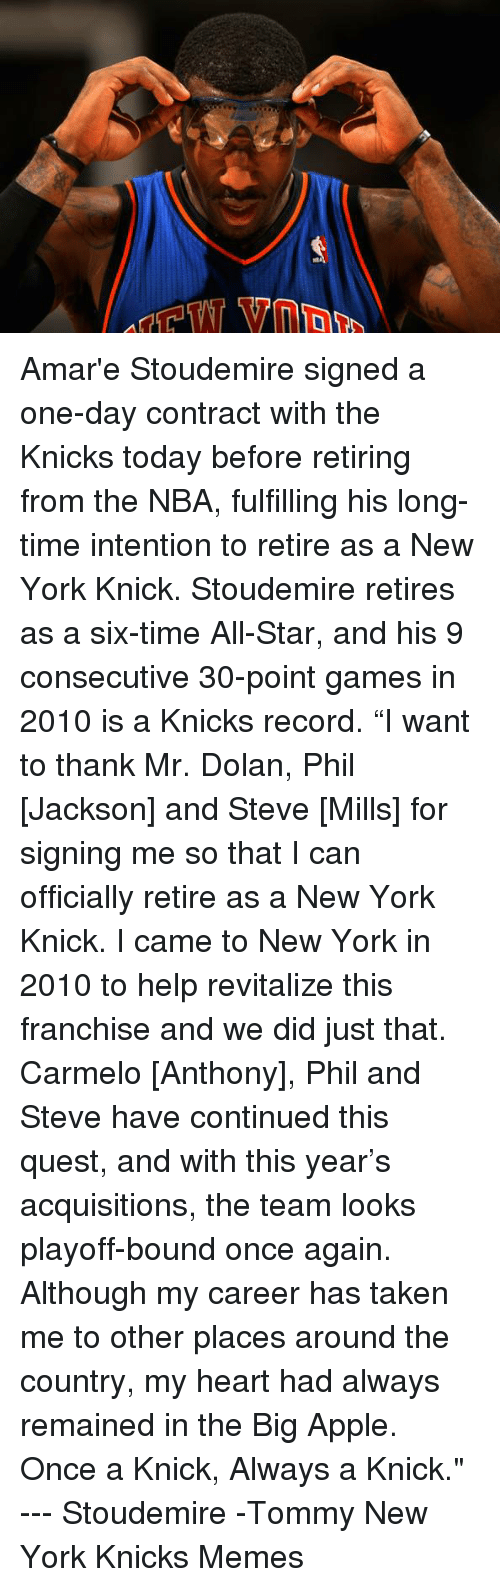 """All Star, Amar'e Stoudemire, and Apple: Ar75-TVY7 ▼m同9 Amar'e Stoudemire signed a one-day contract with the Knicks today before retiring from the NBA, fulfilling his long-time intention to retire as a New York Knick. Stoudemire retires as a six-time All-Star, and his 9 consecutive 30-point games in 2010 is a Knicks record.  """"I want to thank Mr. Dolan, Phil [Jackson] and Steve [Mills] for signing me so that I can officially retire as a New York Knick. I came to New York in 2010 to help revitalize this franchise and we did just that. Carmelo [Anthony], Phil and Steve have continued this quest, and with this year's acquisitions, the team looks playoff-bound once again. Although my career has taken me to other places around the country, my heart had always remained in the Big Apple. Once a Knick, Always a Knick."""" --- Stoudemire   -Tommy  New York Knicks Memes"""